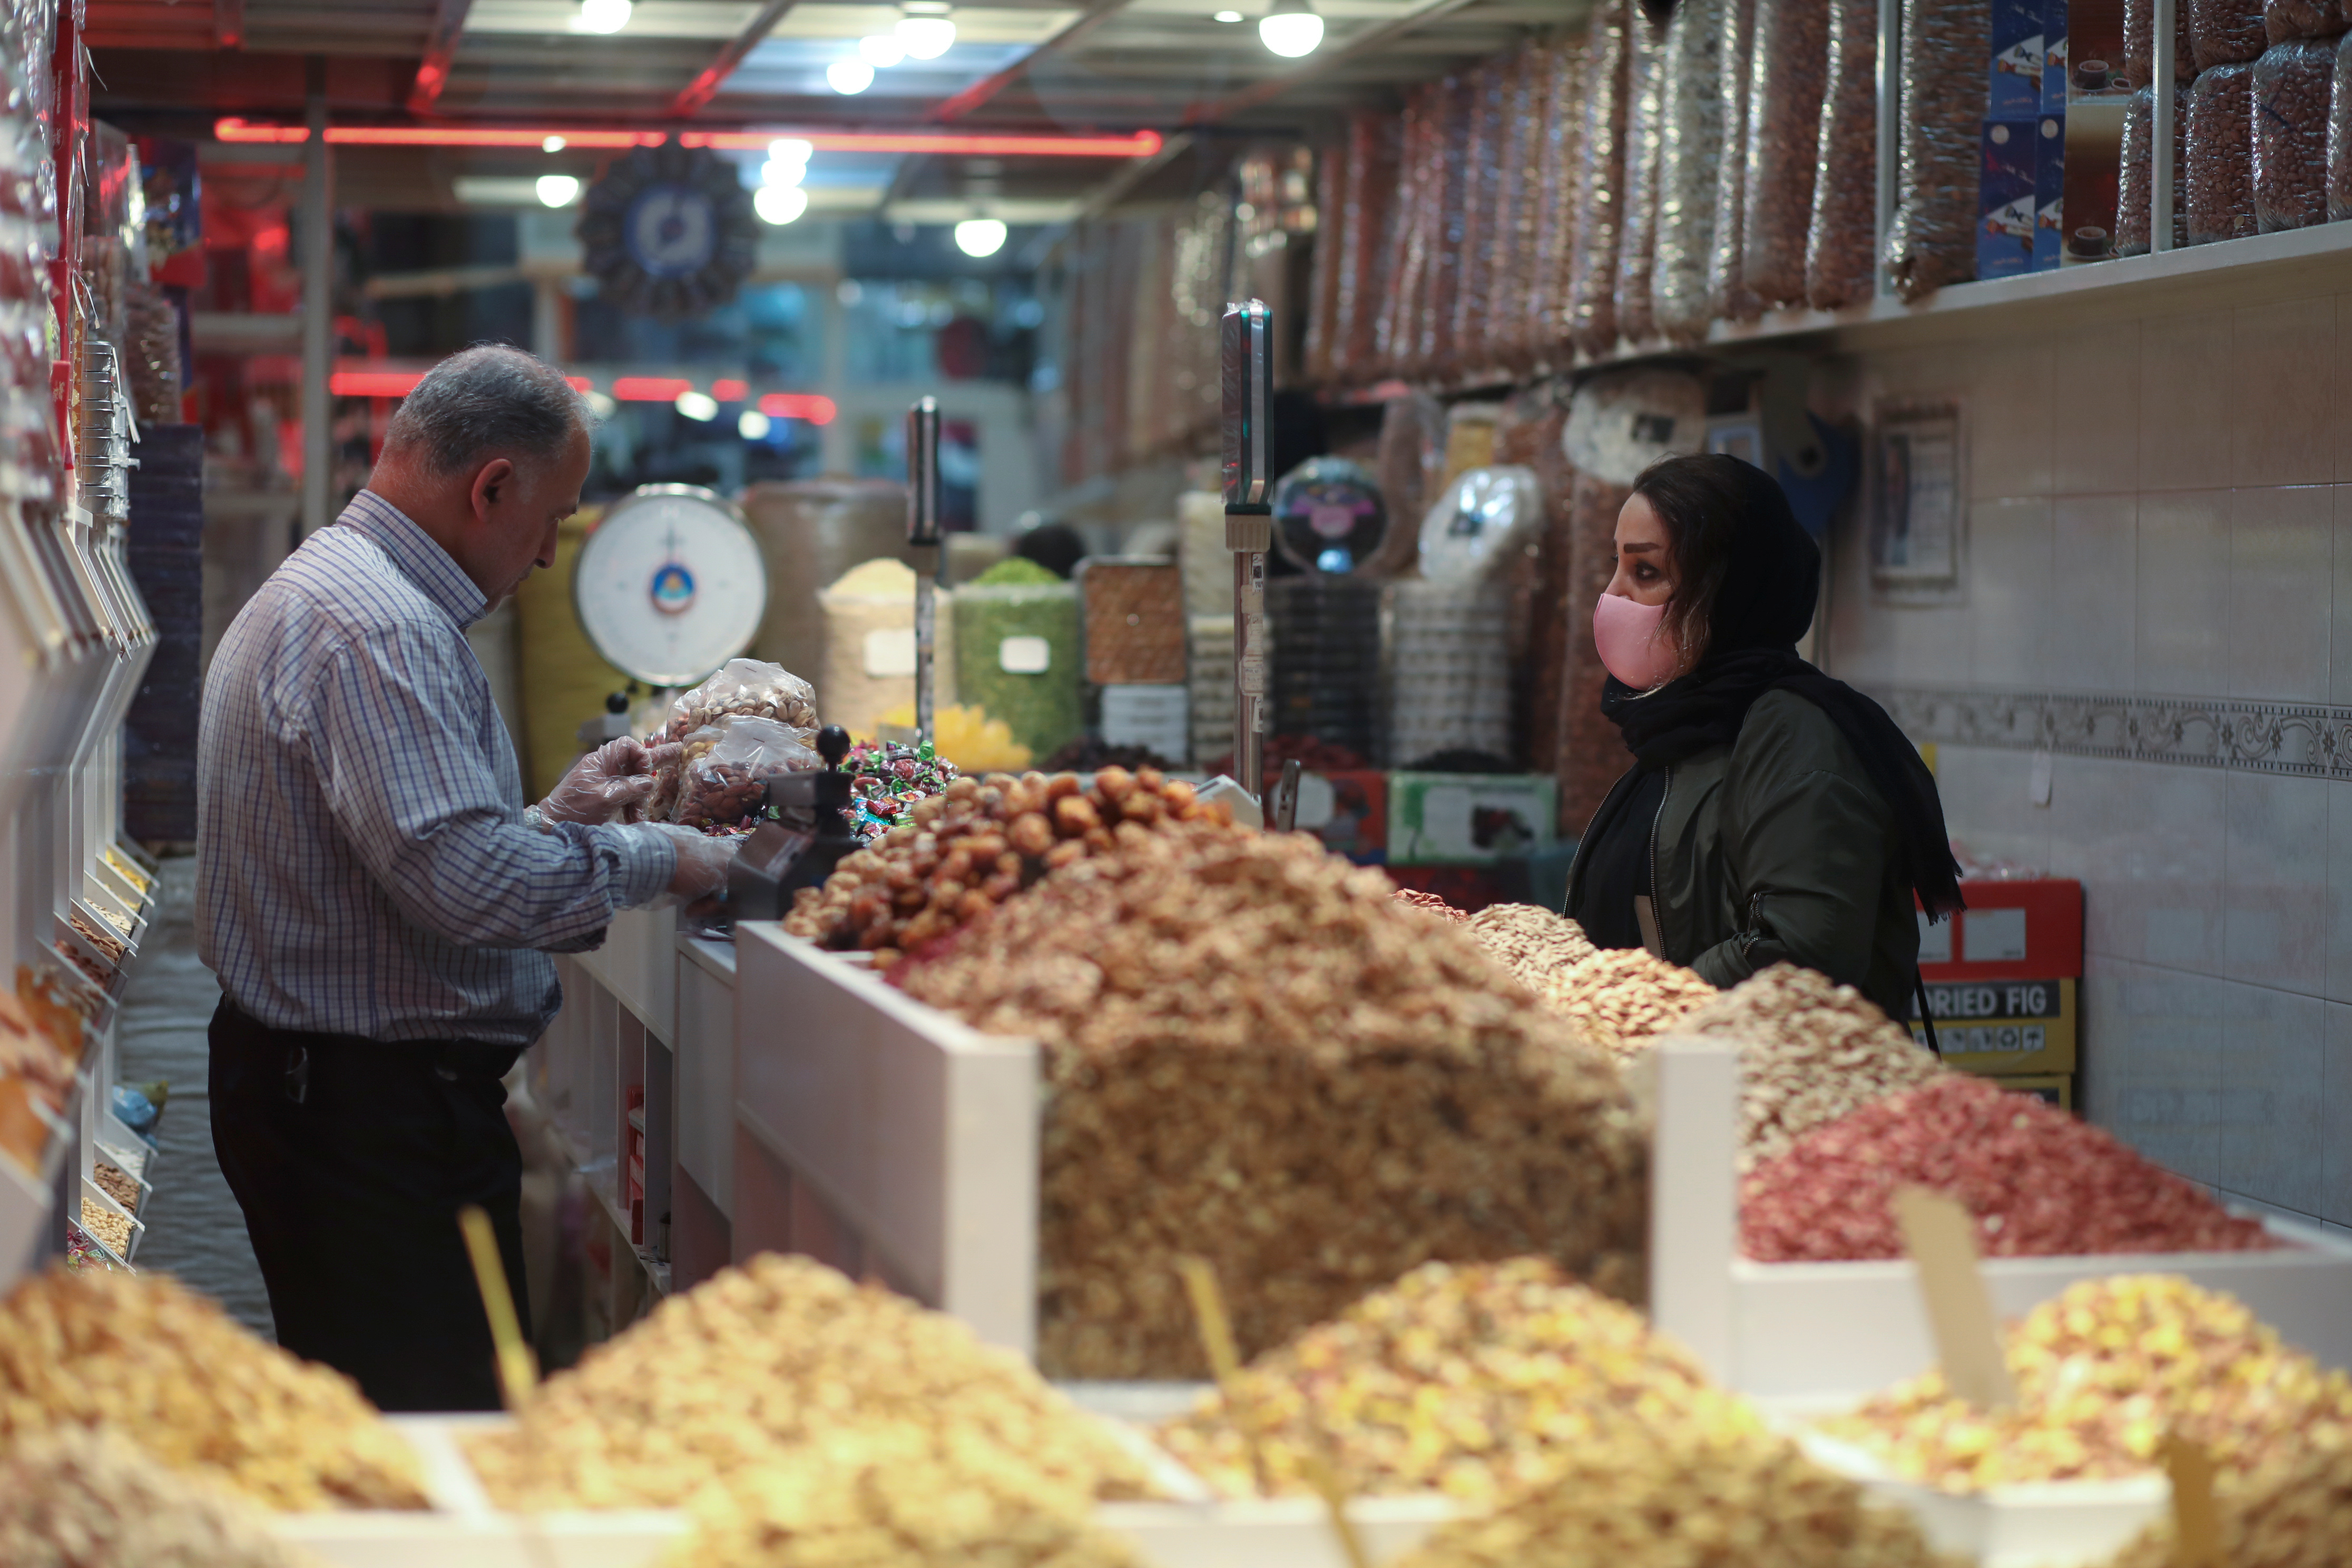 A woman wears a protective face mask during the COVID-19 pandemic as she shops at Tajrish Bazar in Tehran ahead of Nowruz in March 2021. (Ali Khara/West Asia News Agency/Reuters)